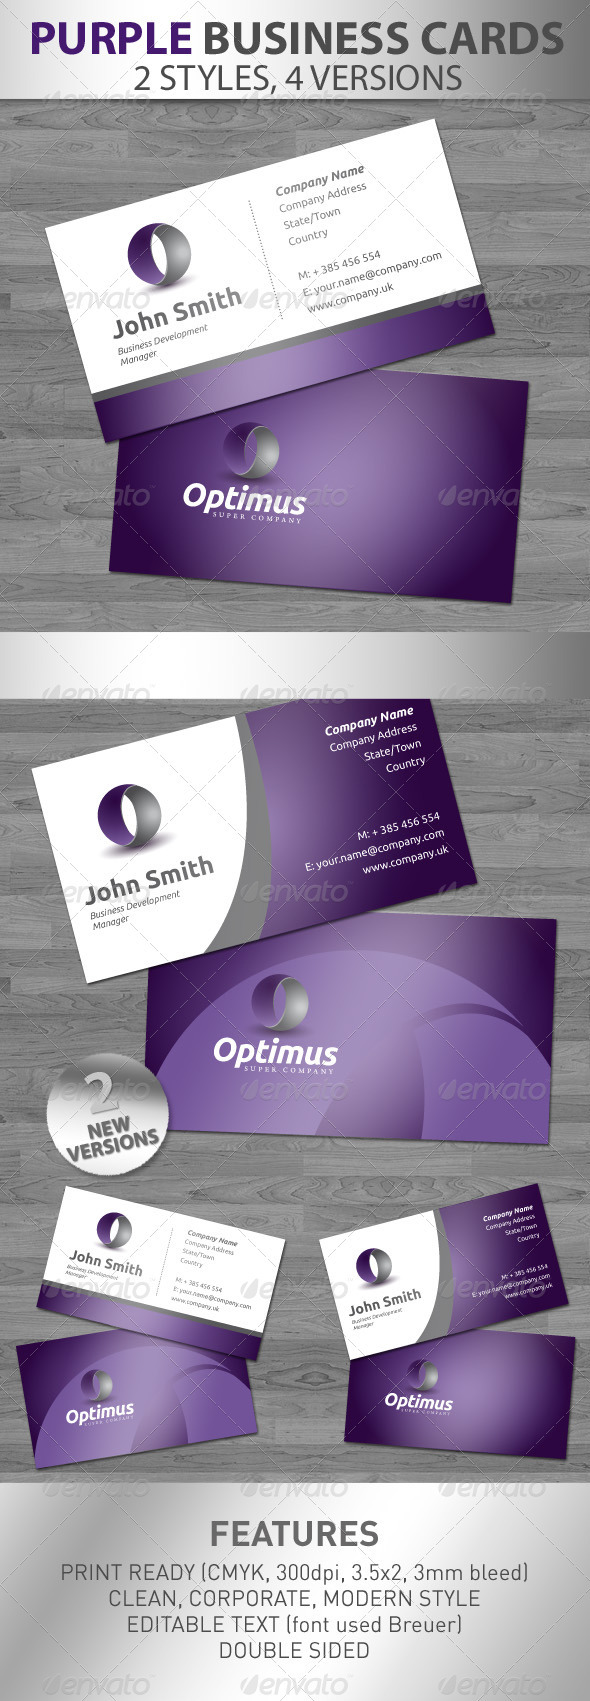 Purple Corporate Business Cards - Business Cards Print Templates